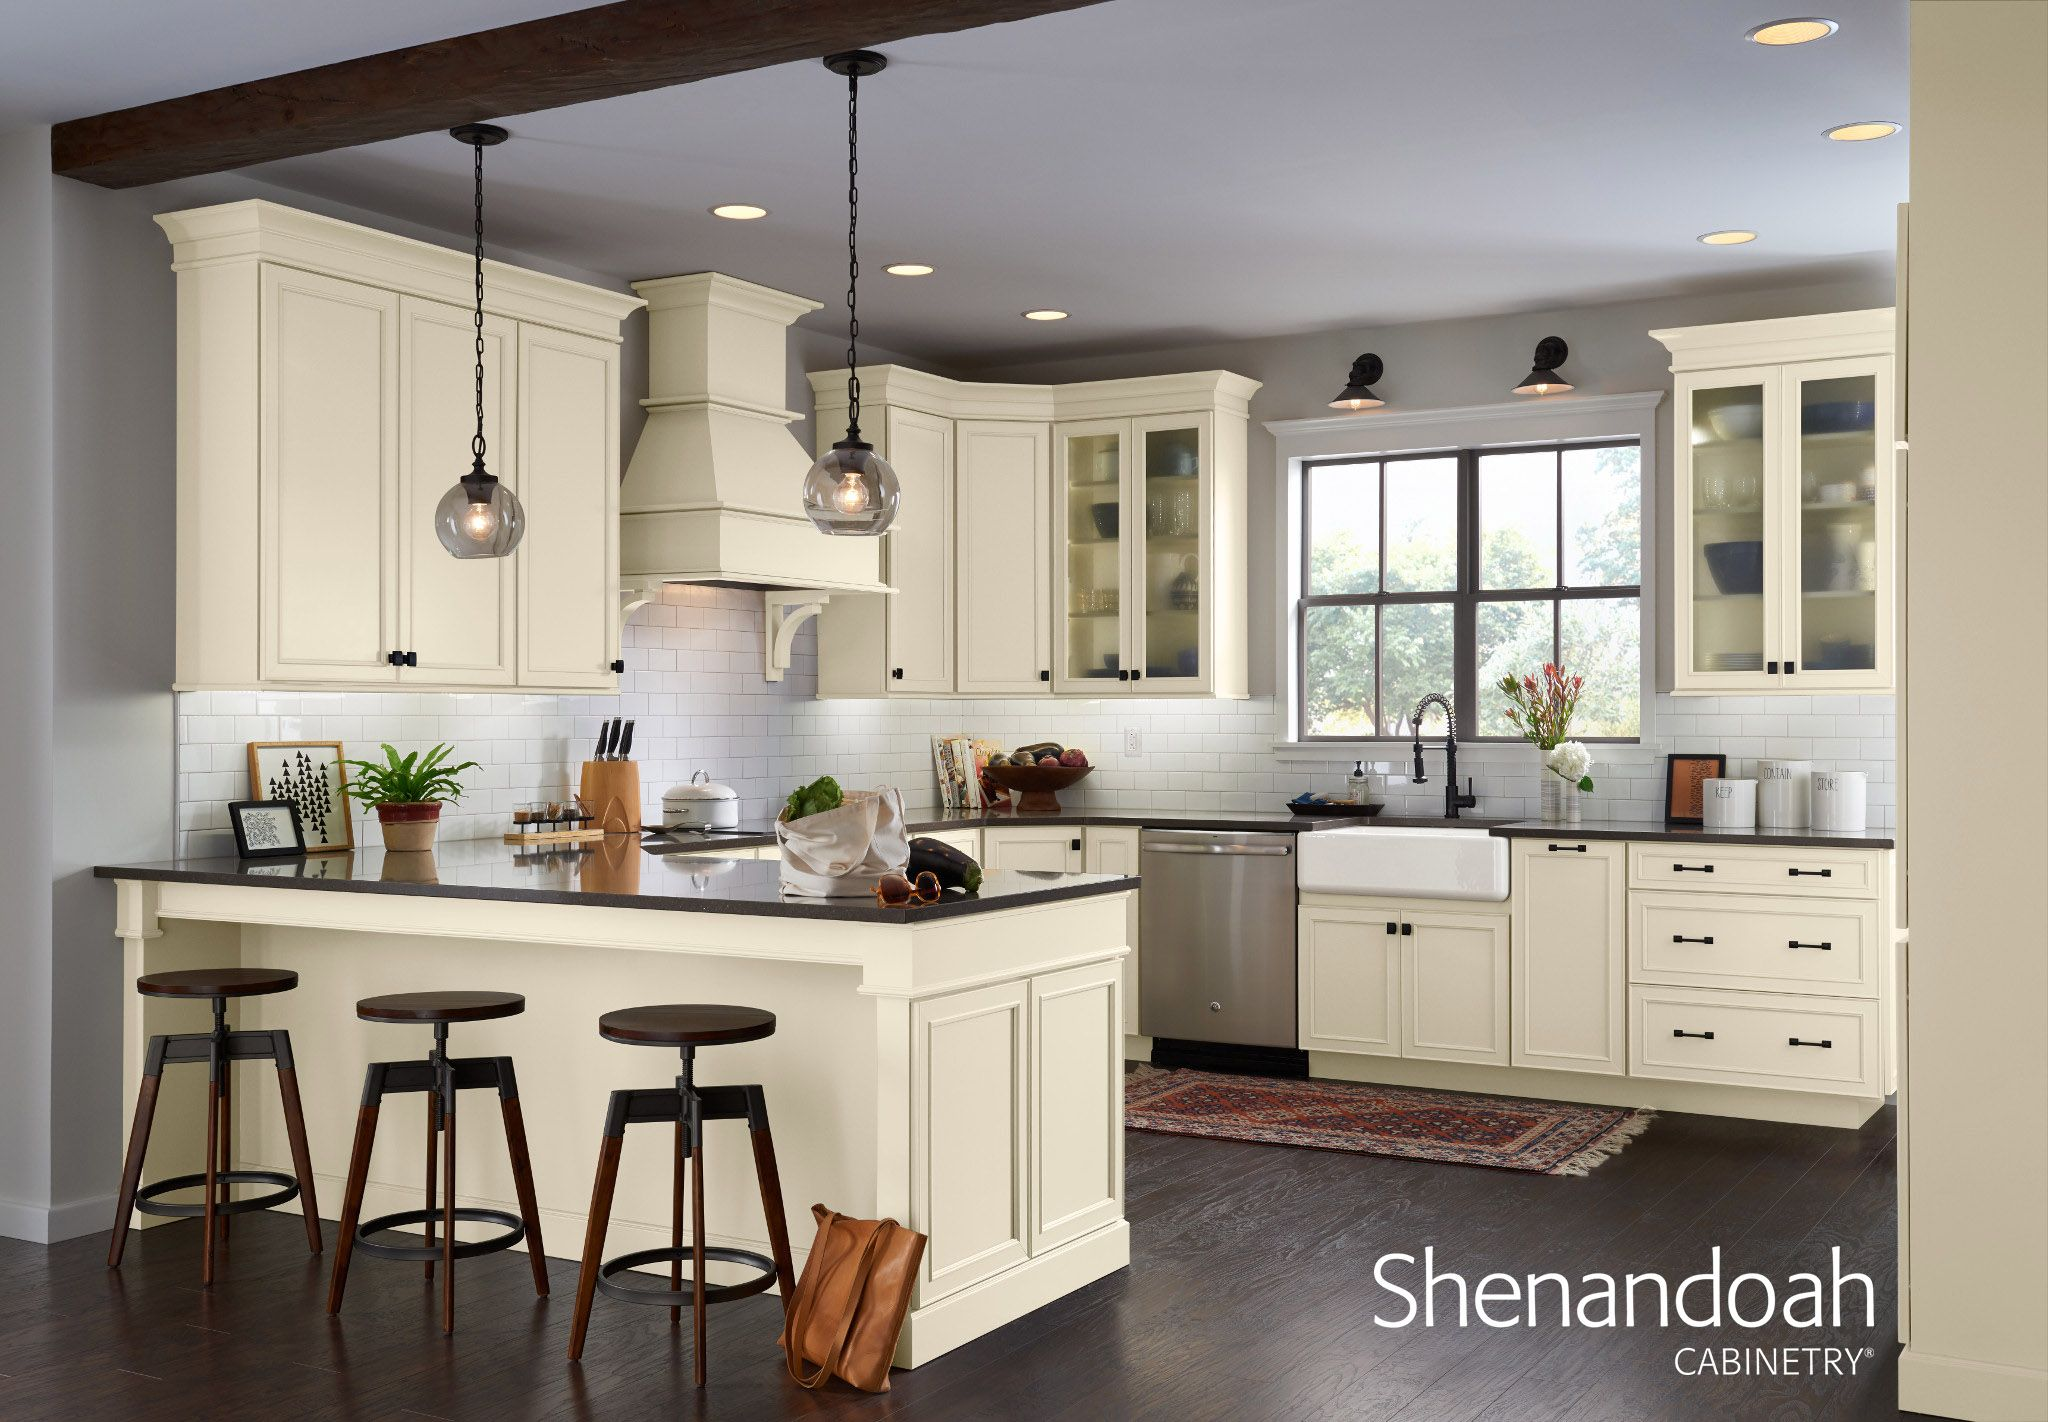 Painted Finish Cabinets image by Shenandoah Cabinetry ...